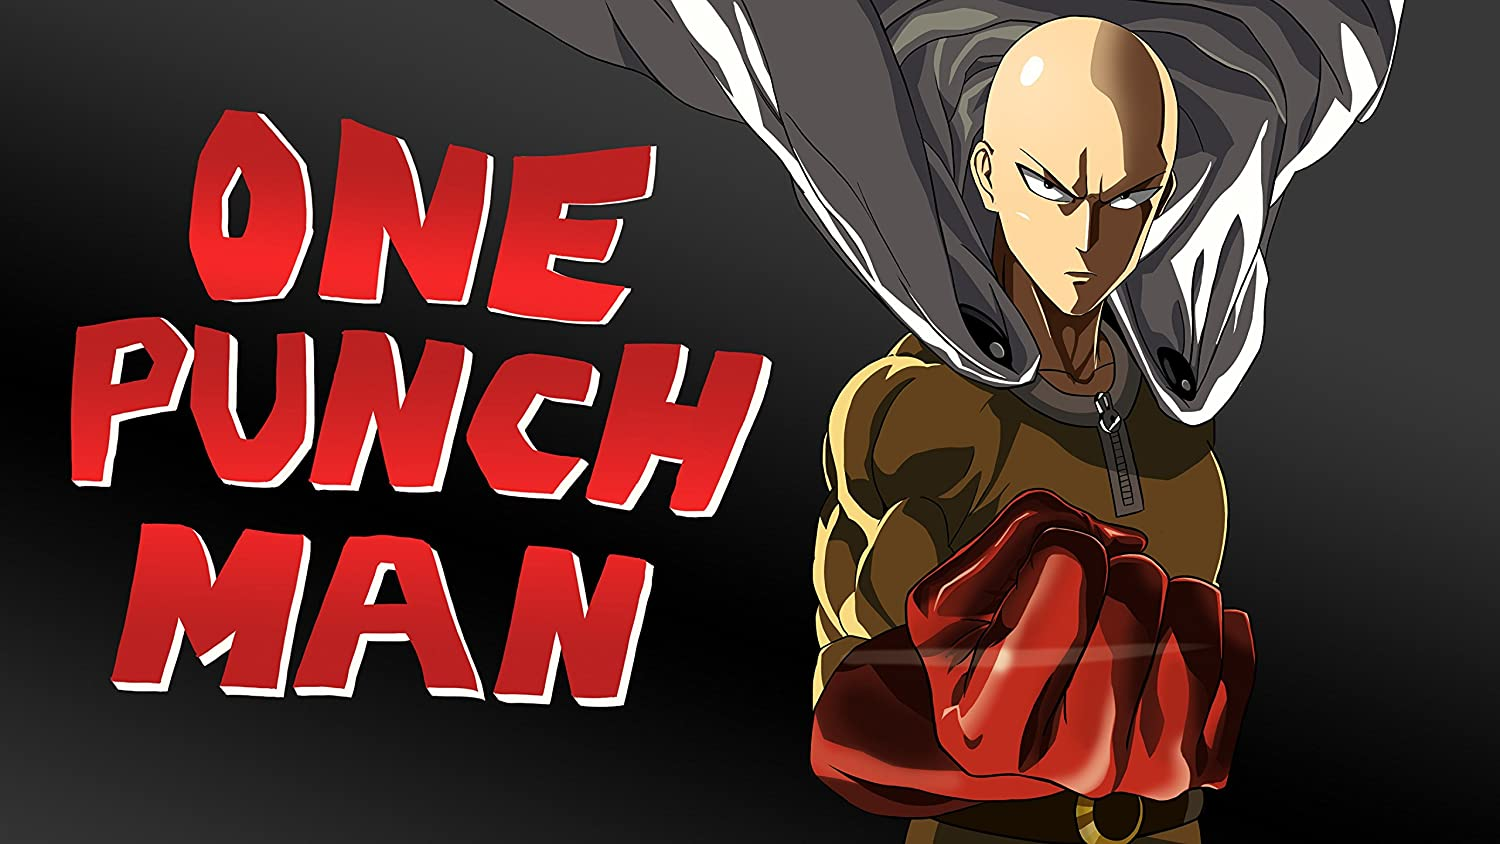 RFG REMOVE FROM GAME One Punch Man Pose Playmat 24 x 14 inch